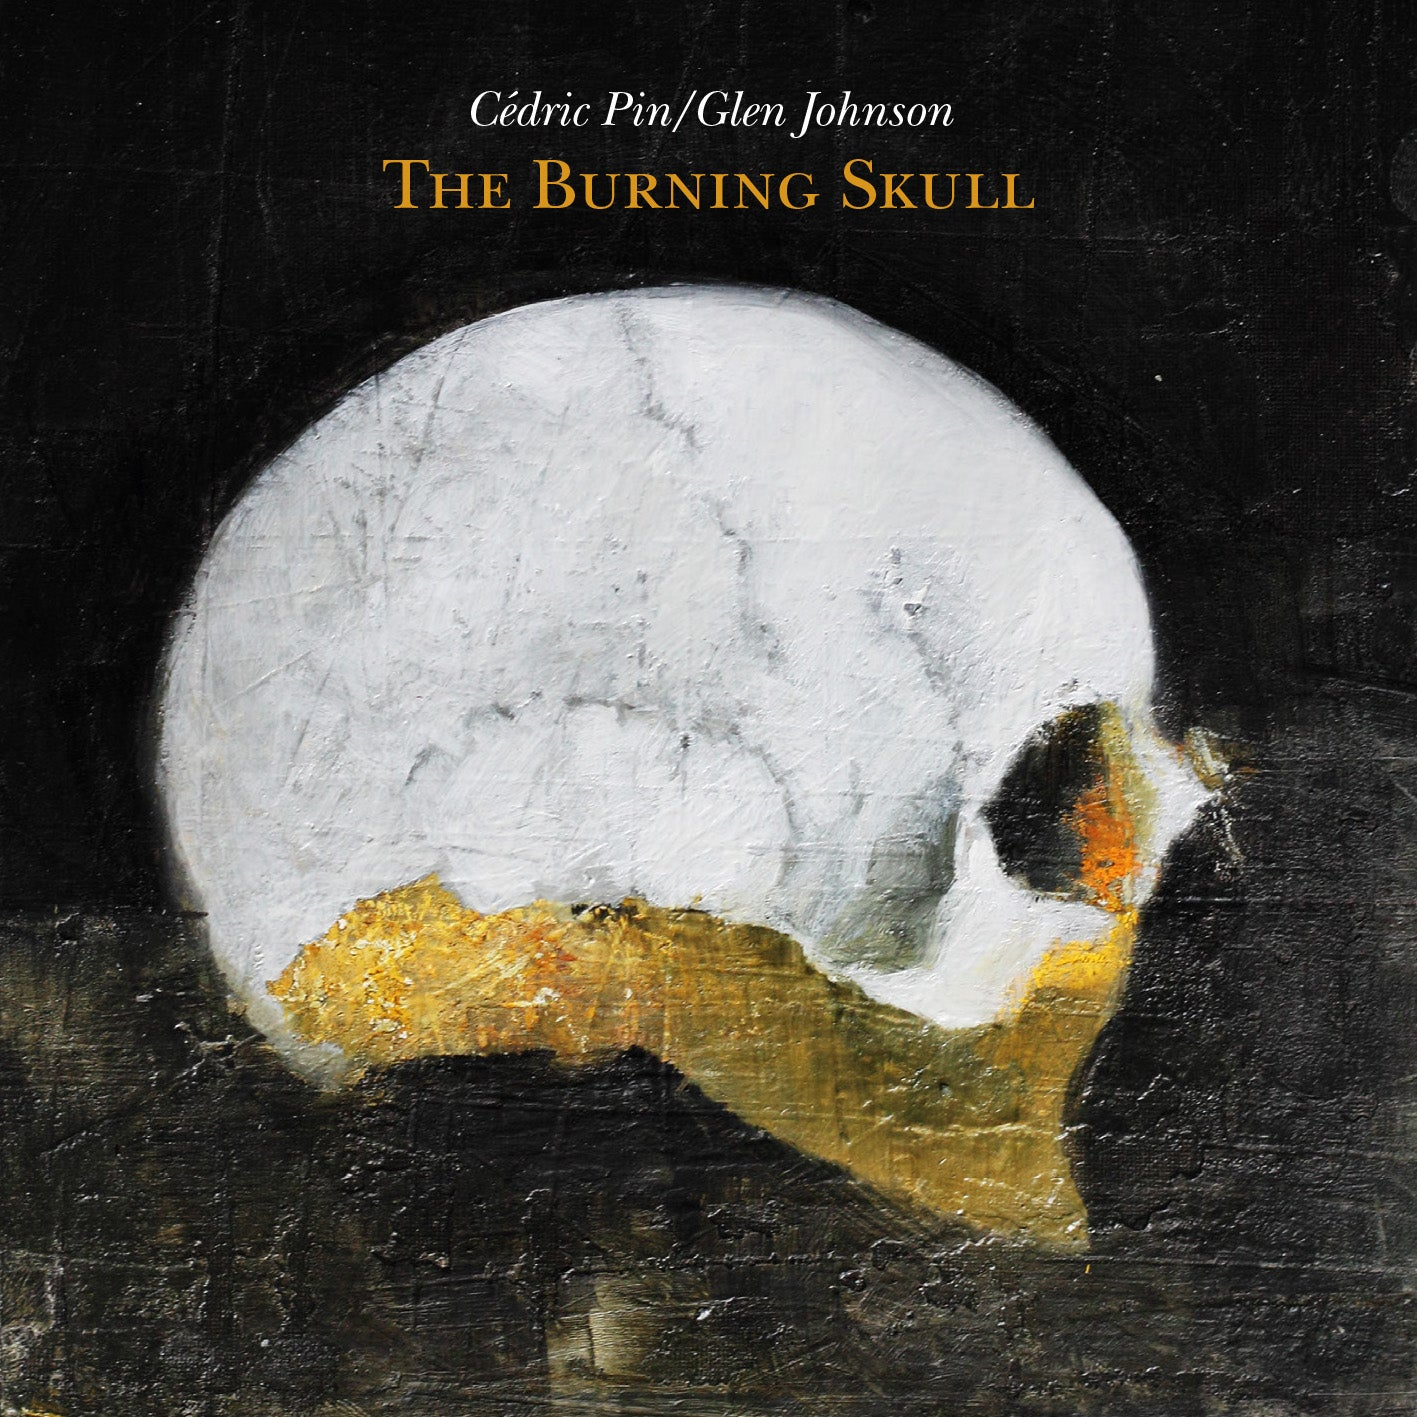 Cédric Pin, Glen Johnson - The Burning Skull